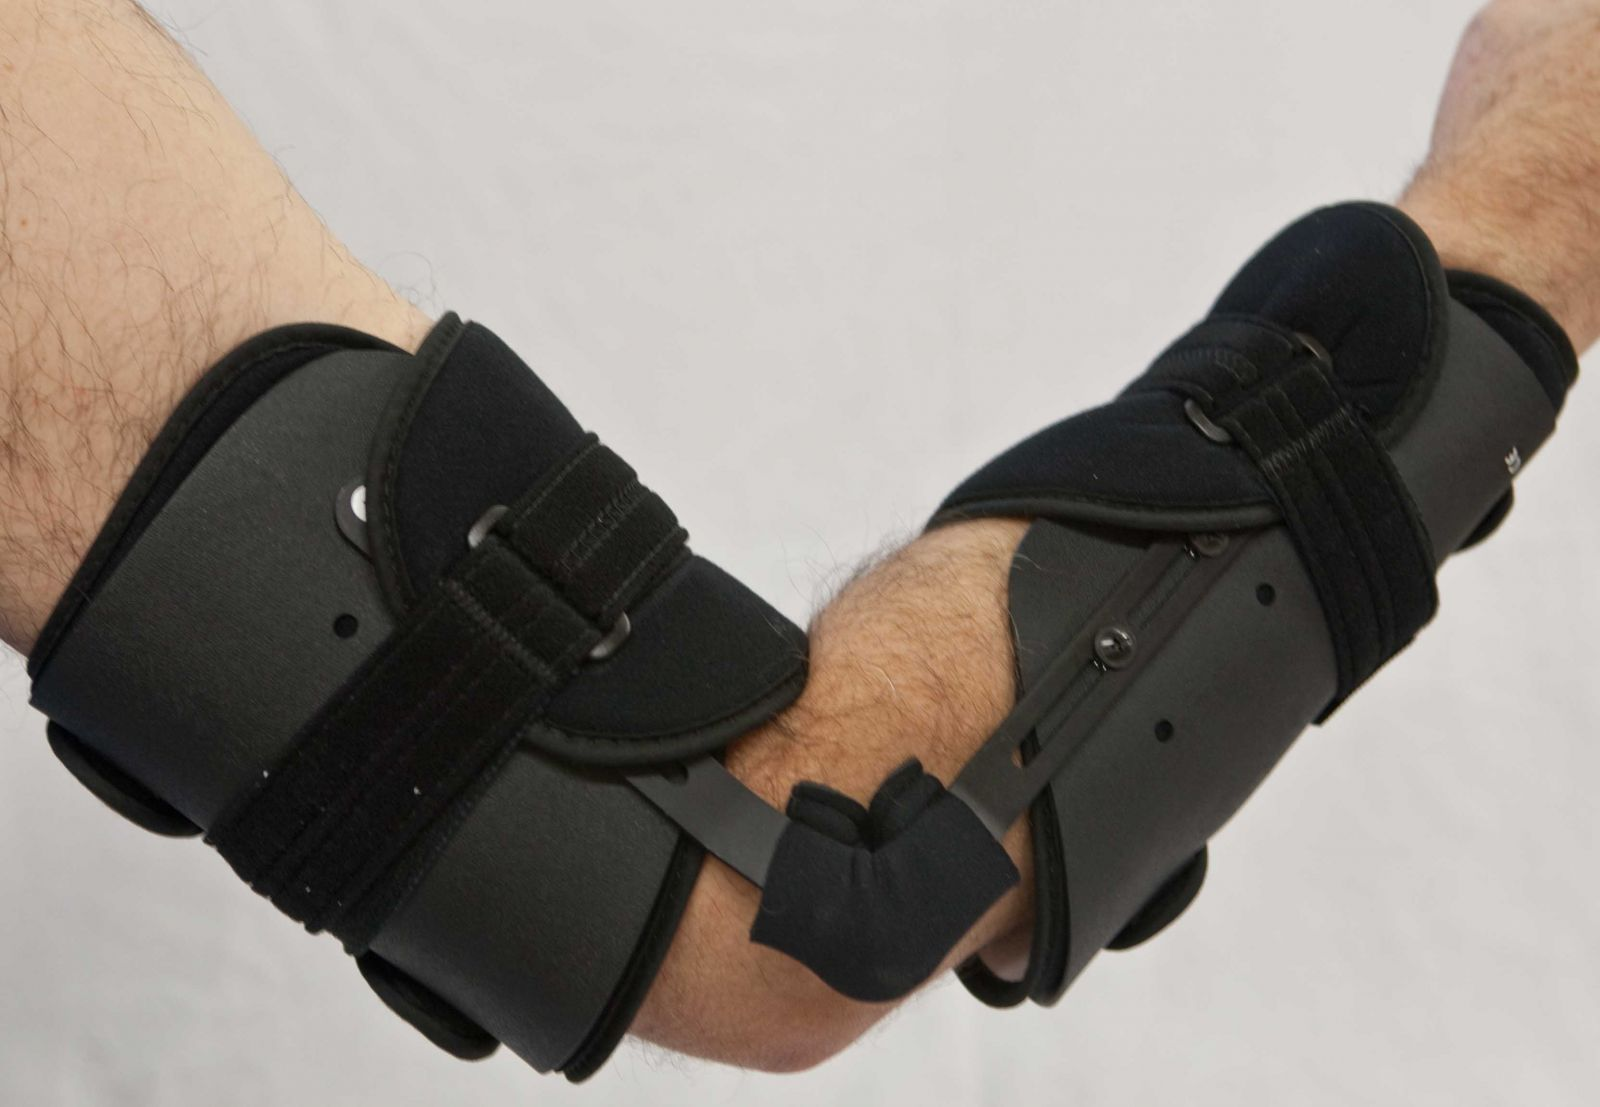 Elbow Orthosis